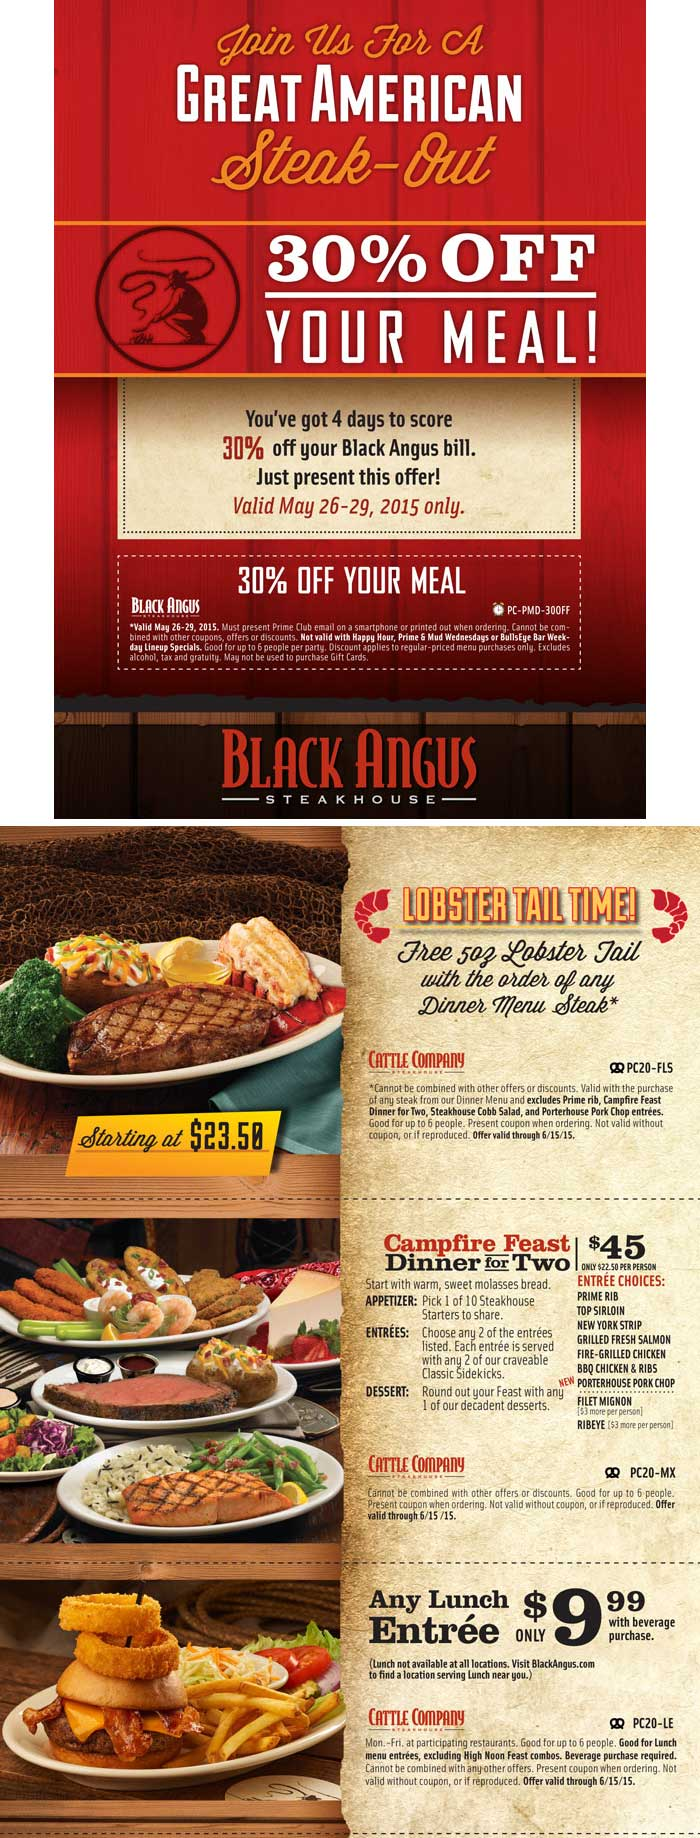 Black Angus Coupon January 2018 Free lobster with your steak, 30% off & more at Black Angus